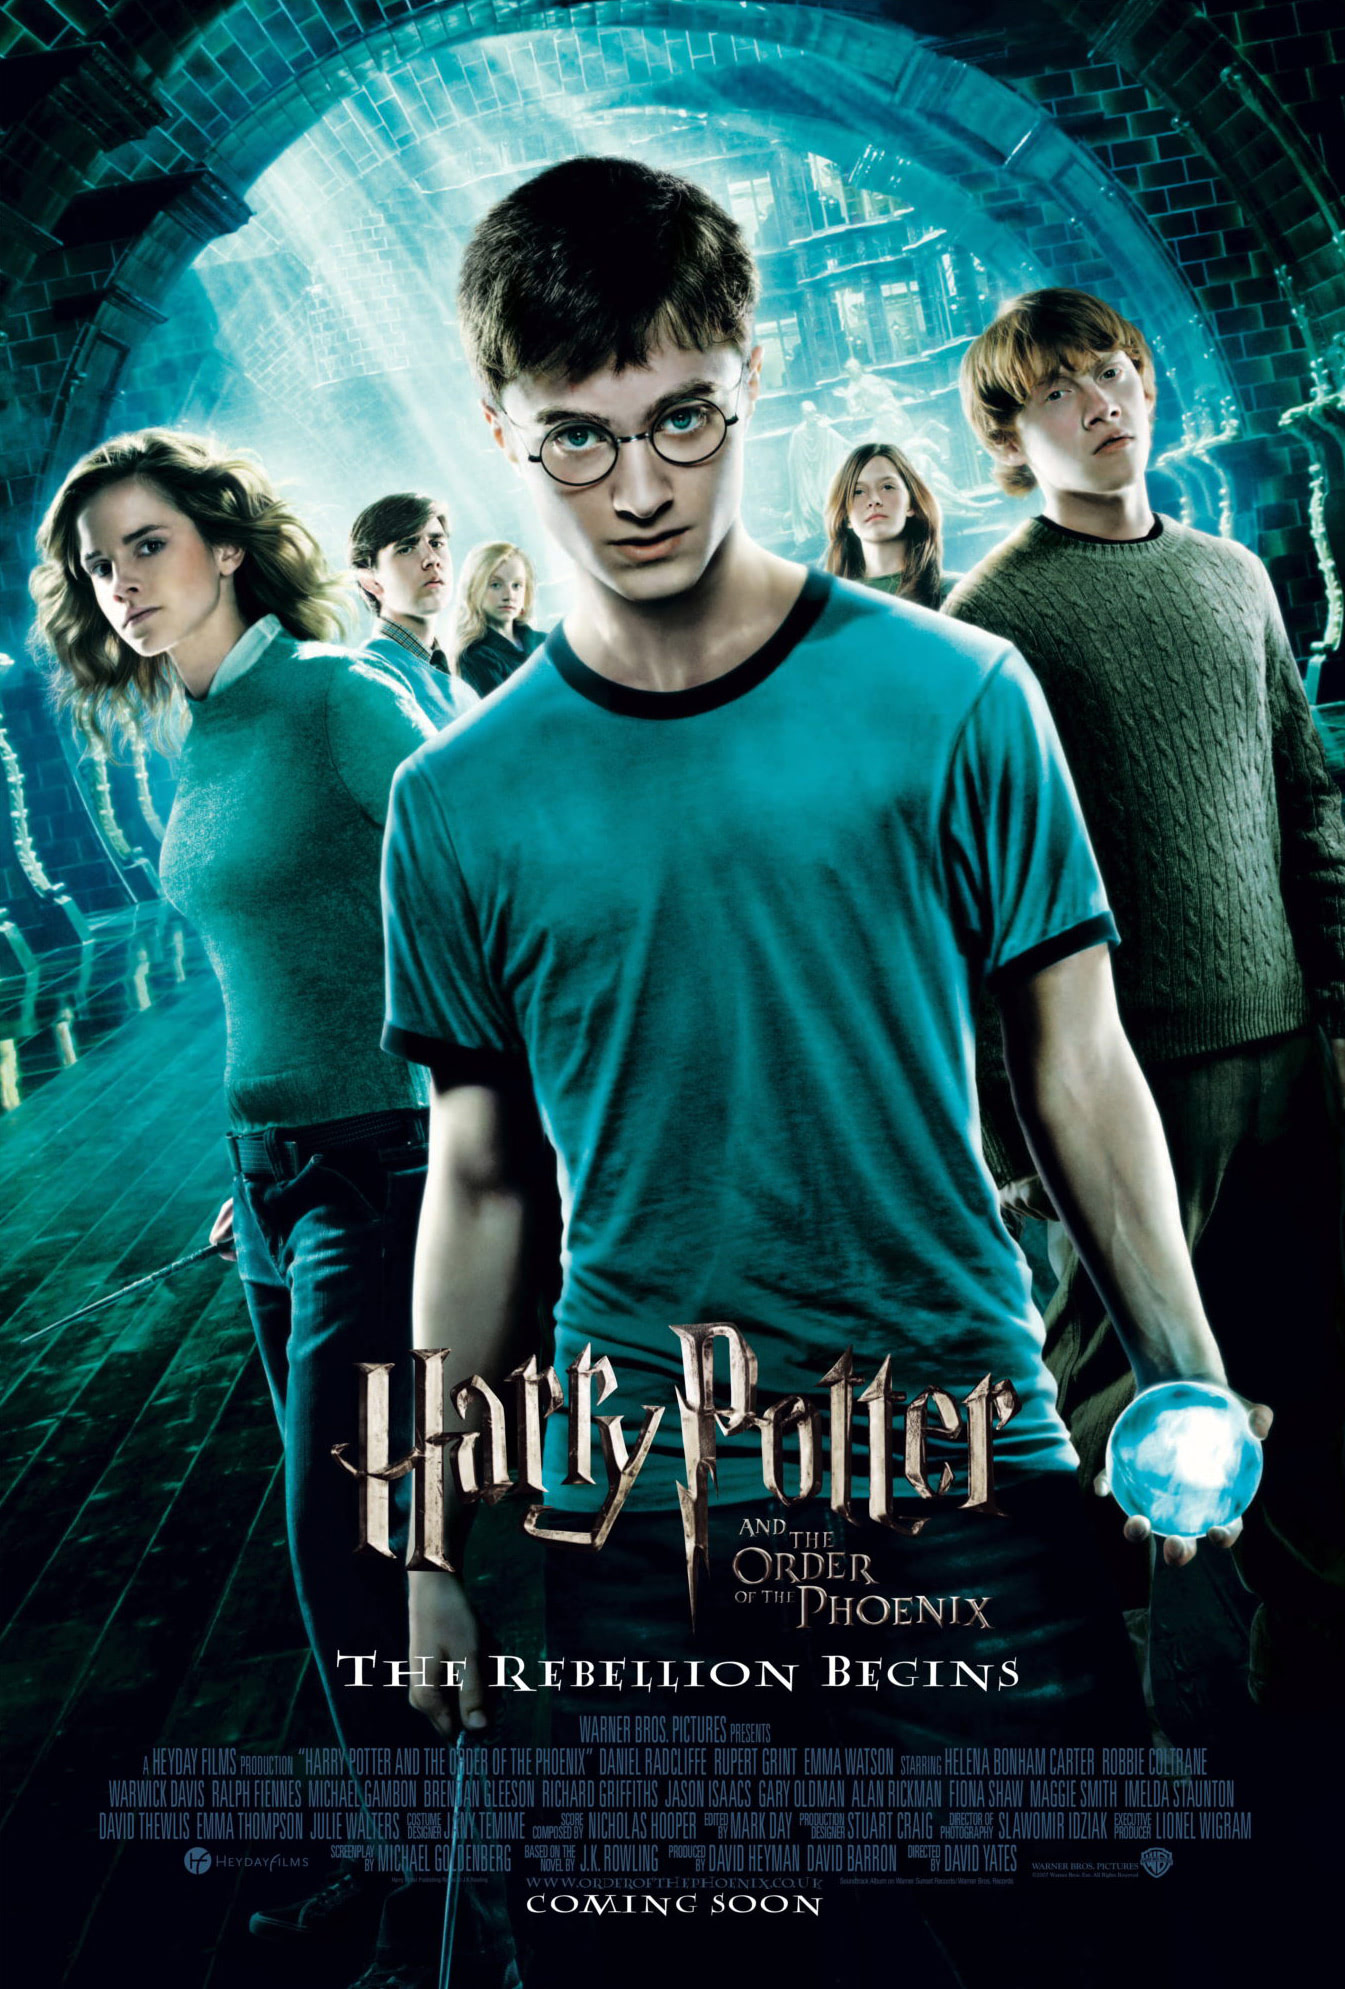 'Order of the Phoenix' theatrical poster #2